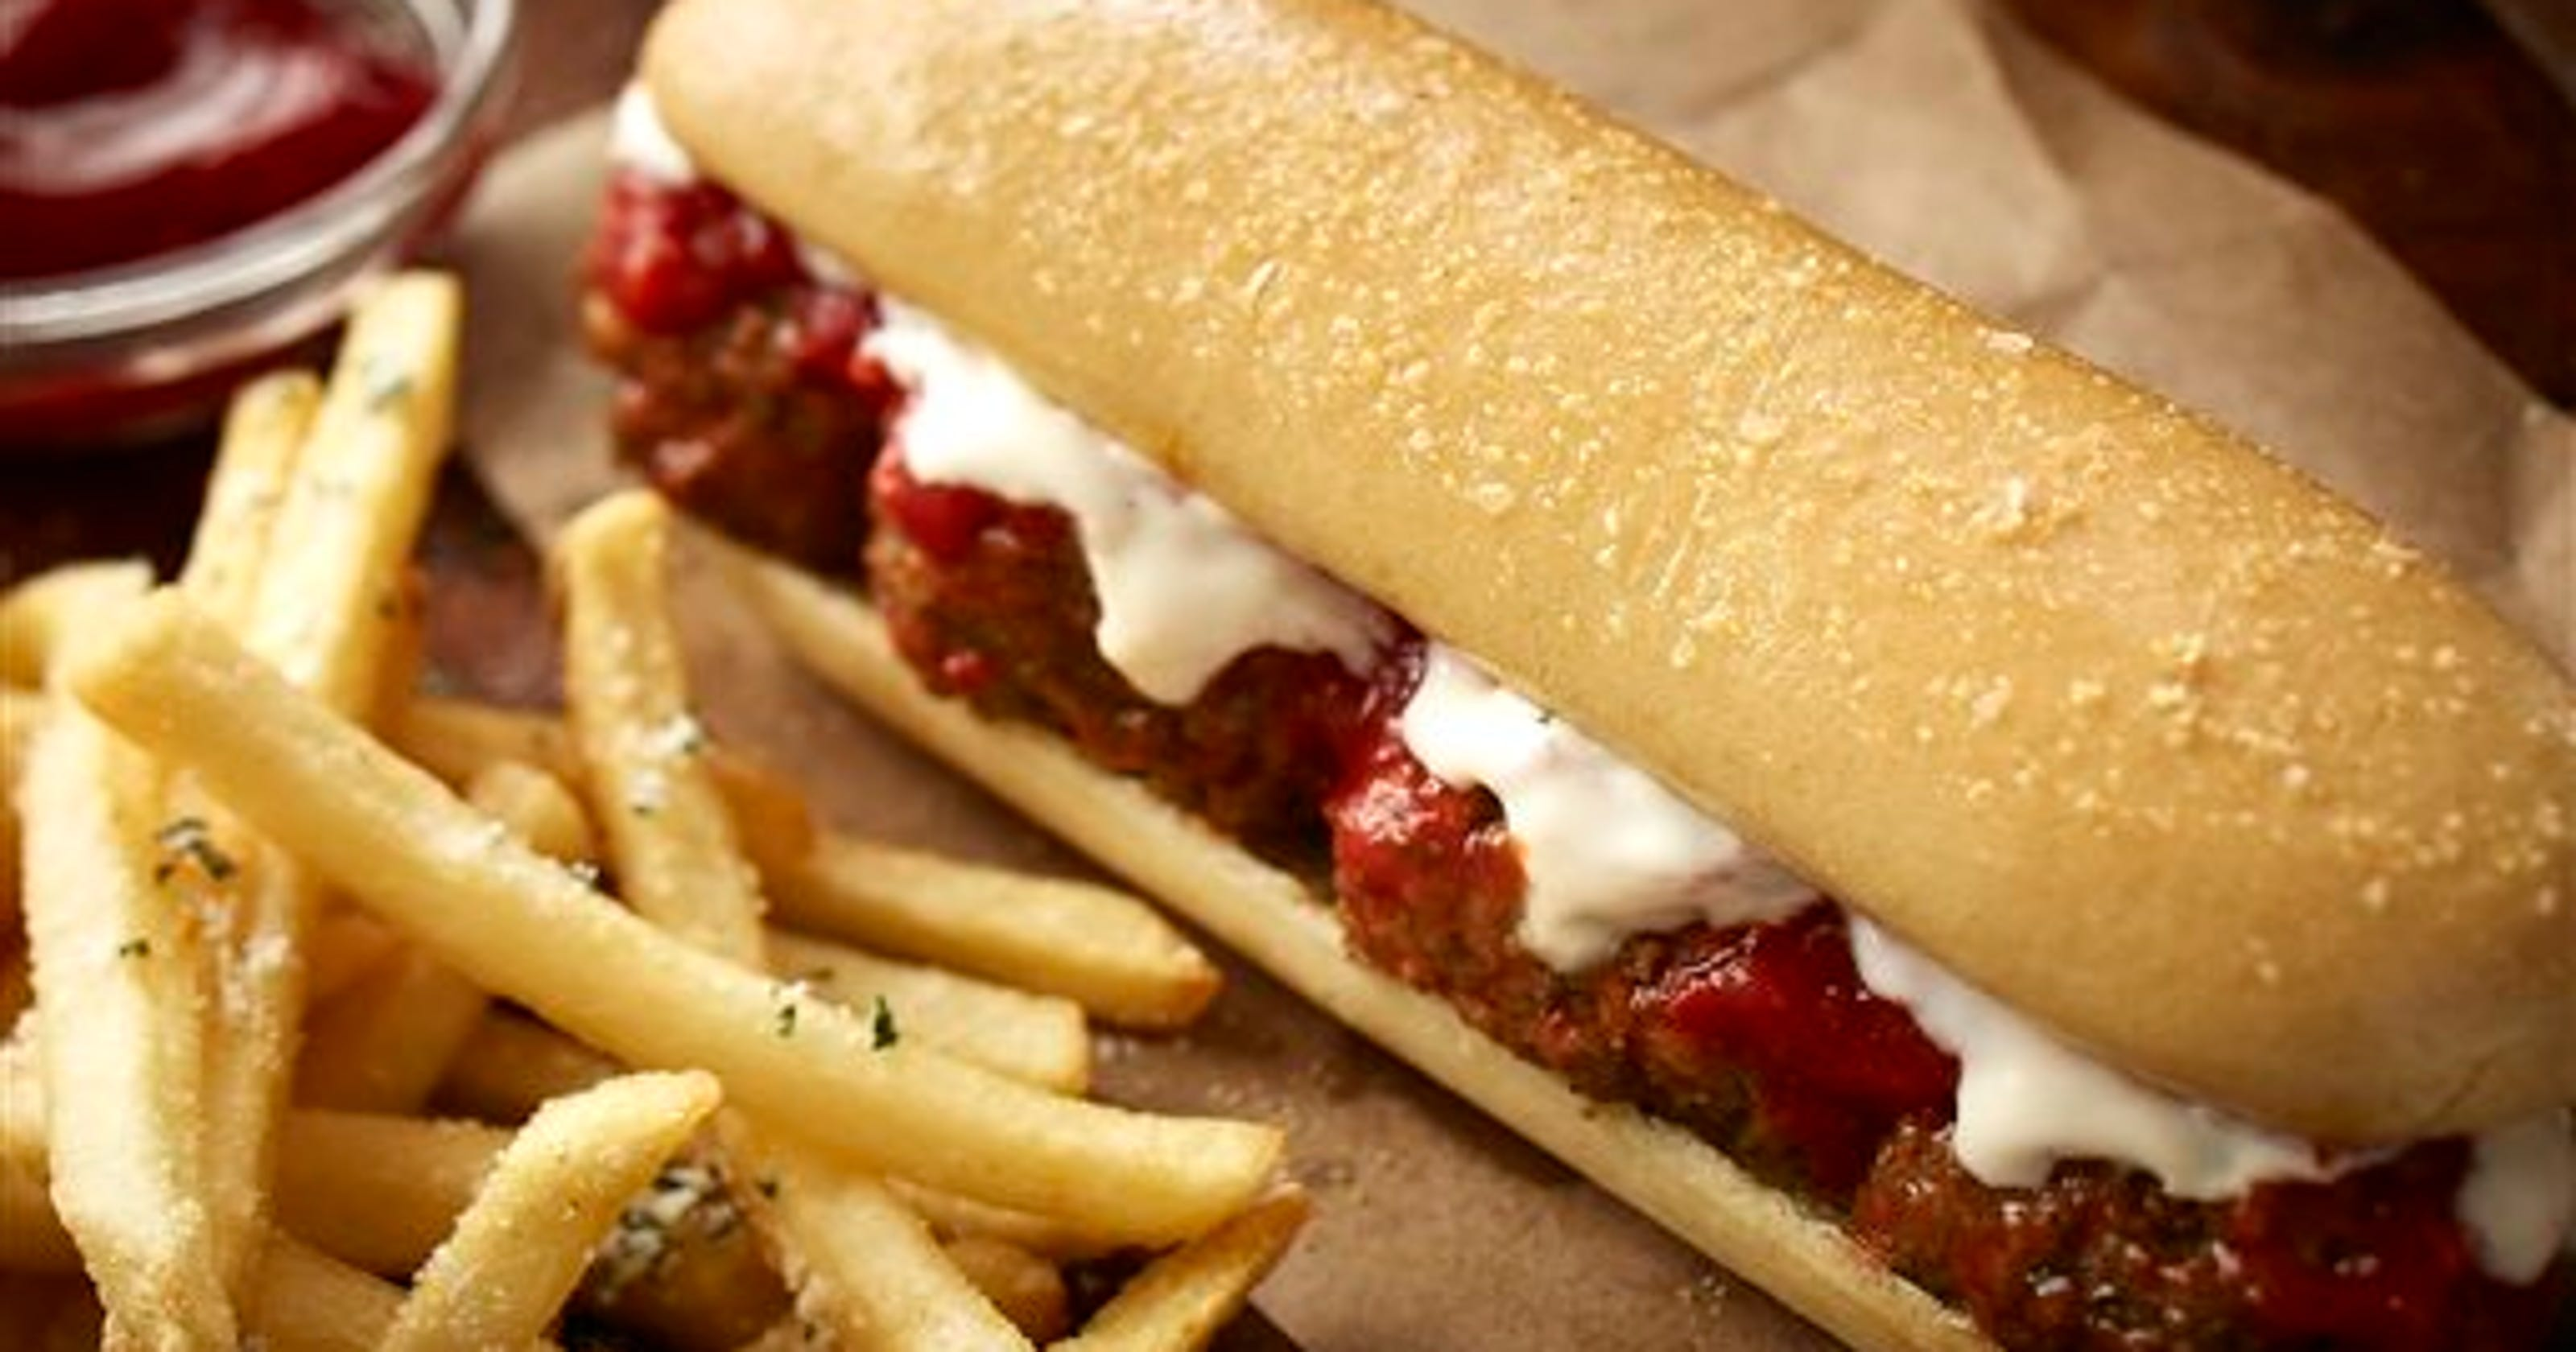 Olive garden 39 s latest plan breadstick sandwiches for Is olive garden open on thanksgiving